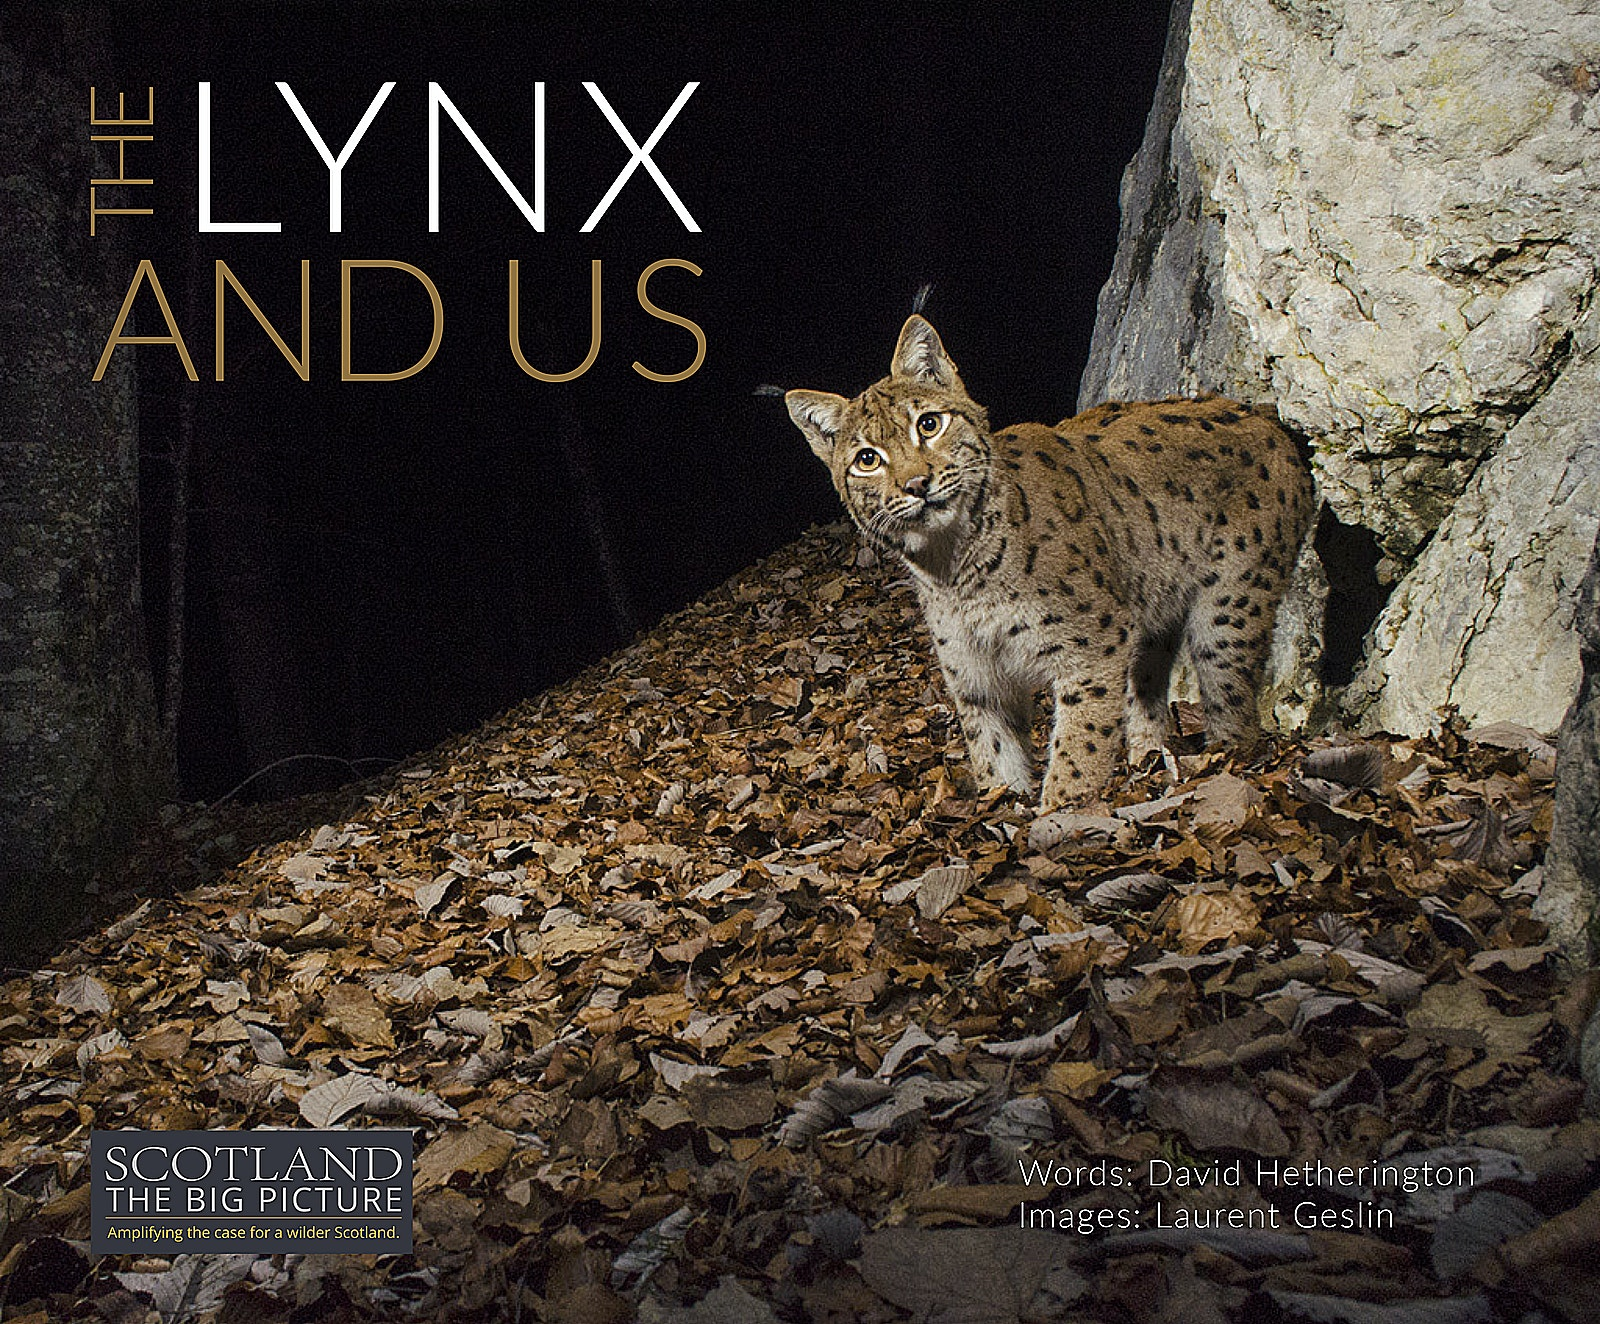 Lynx book cover